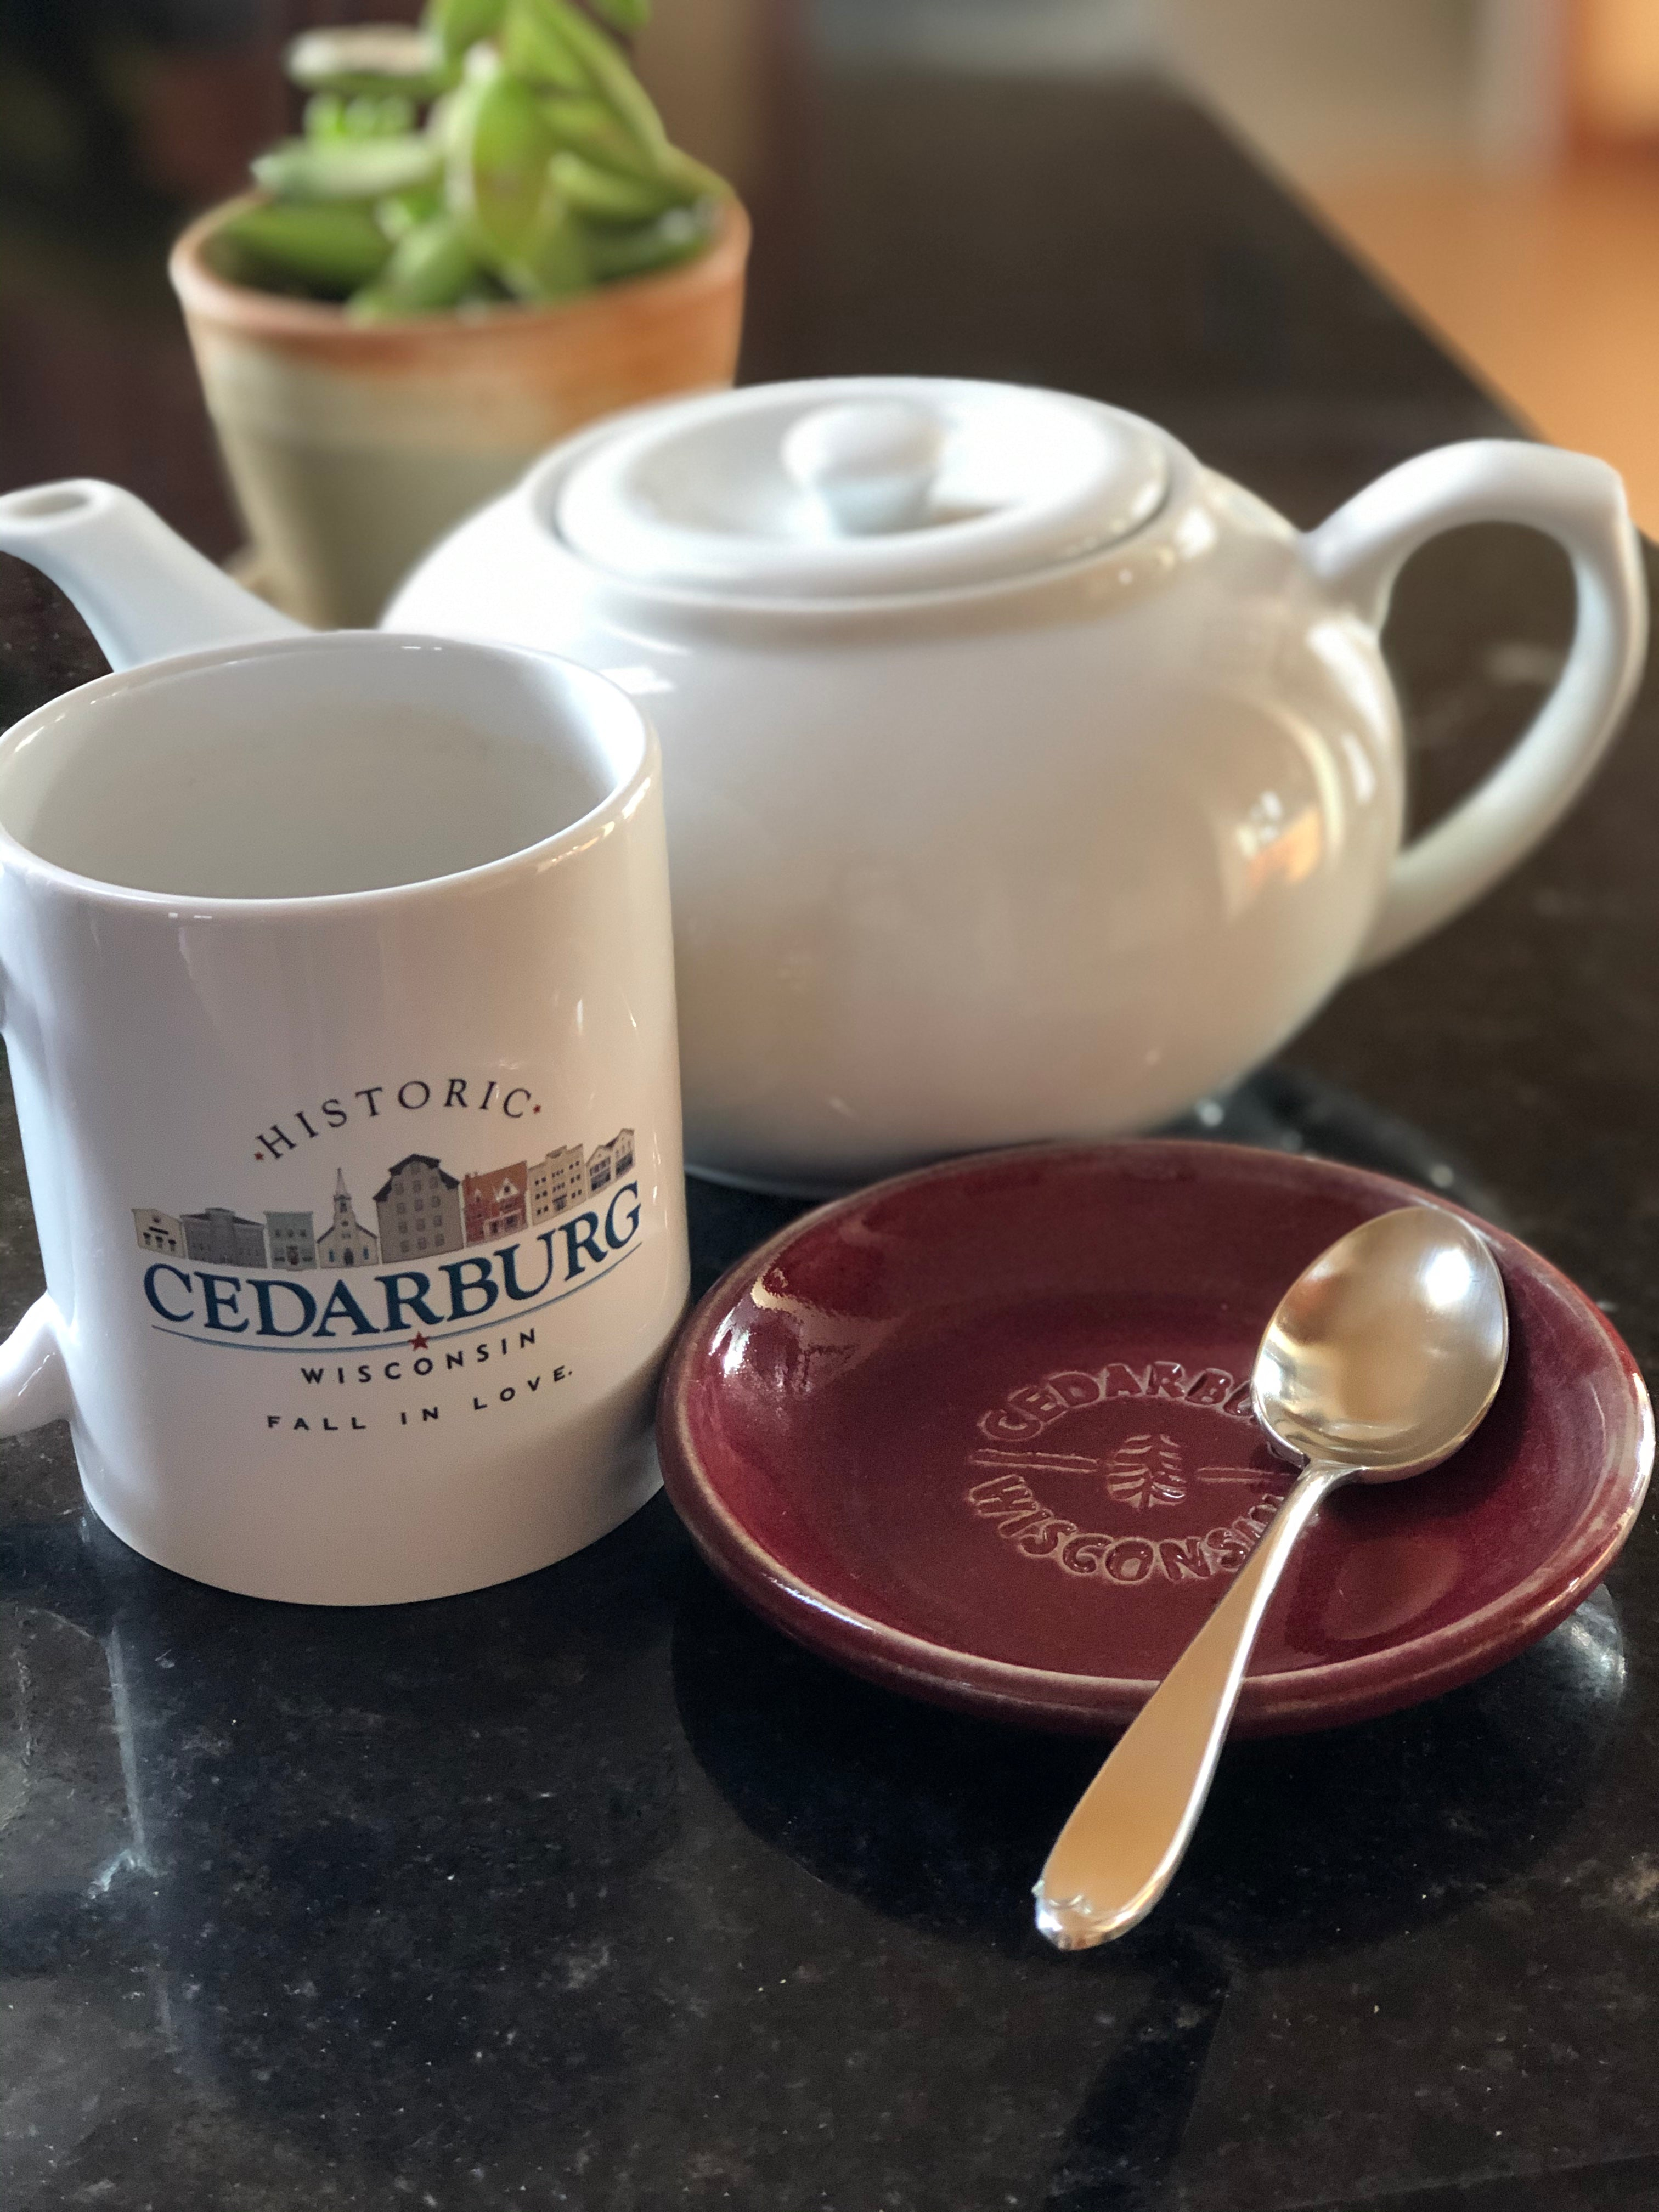 White printed ceramic downtown Cedarburg mugs with small ceramic plate with Cedarburg imprint